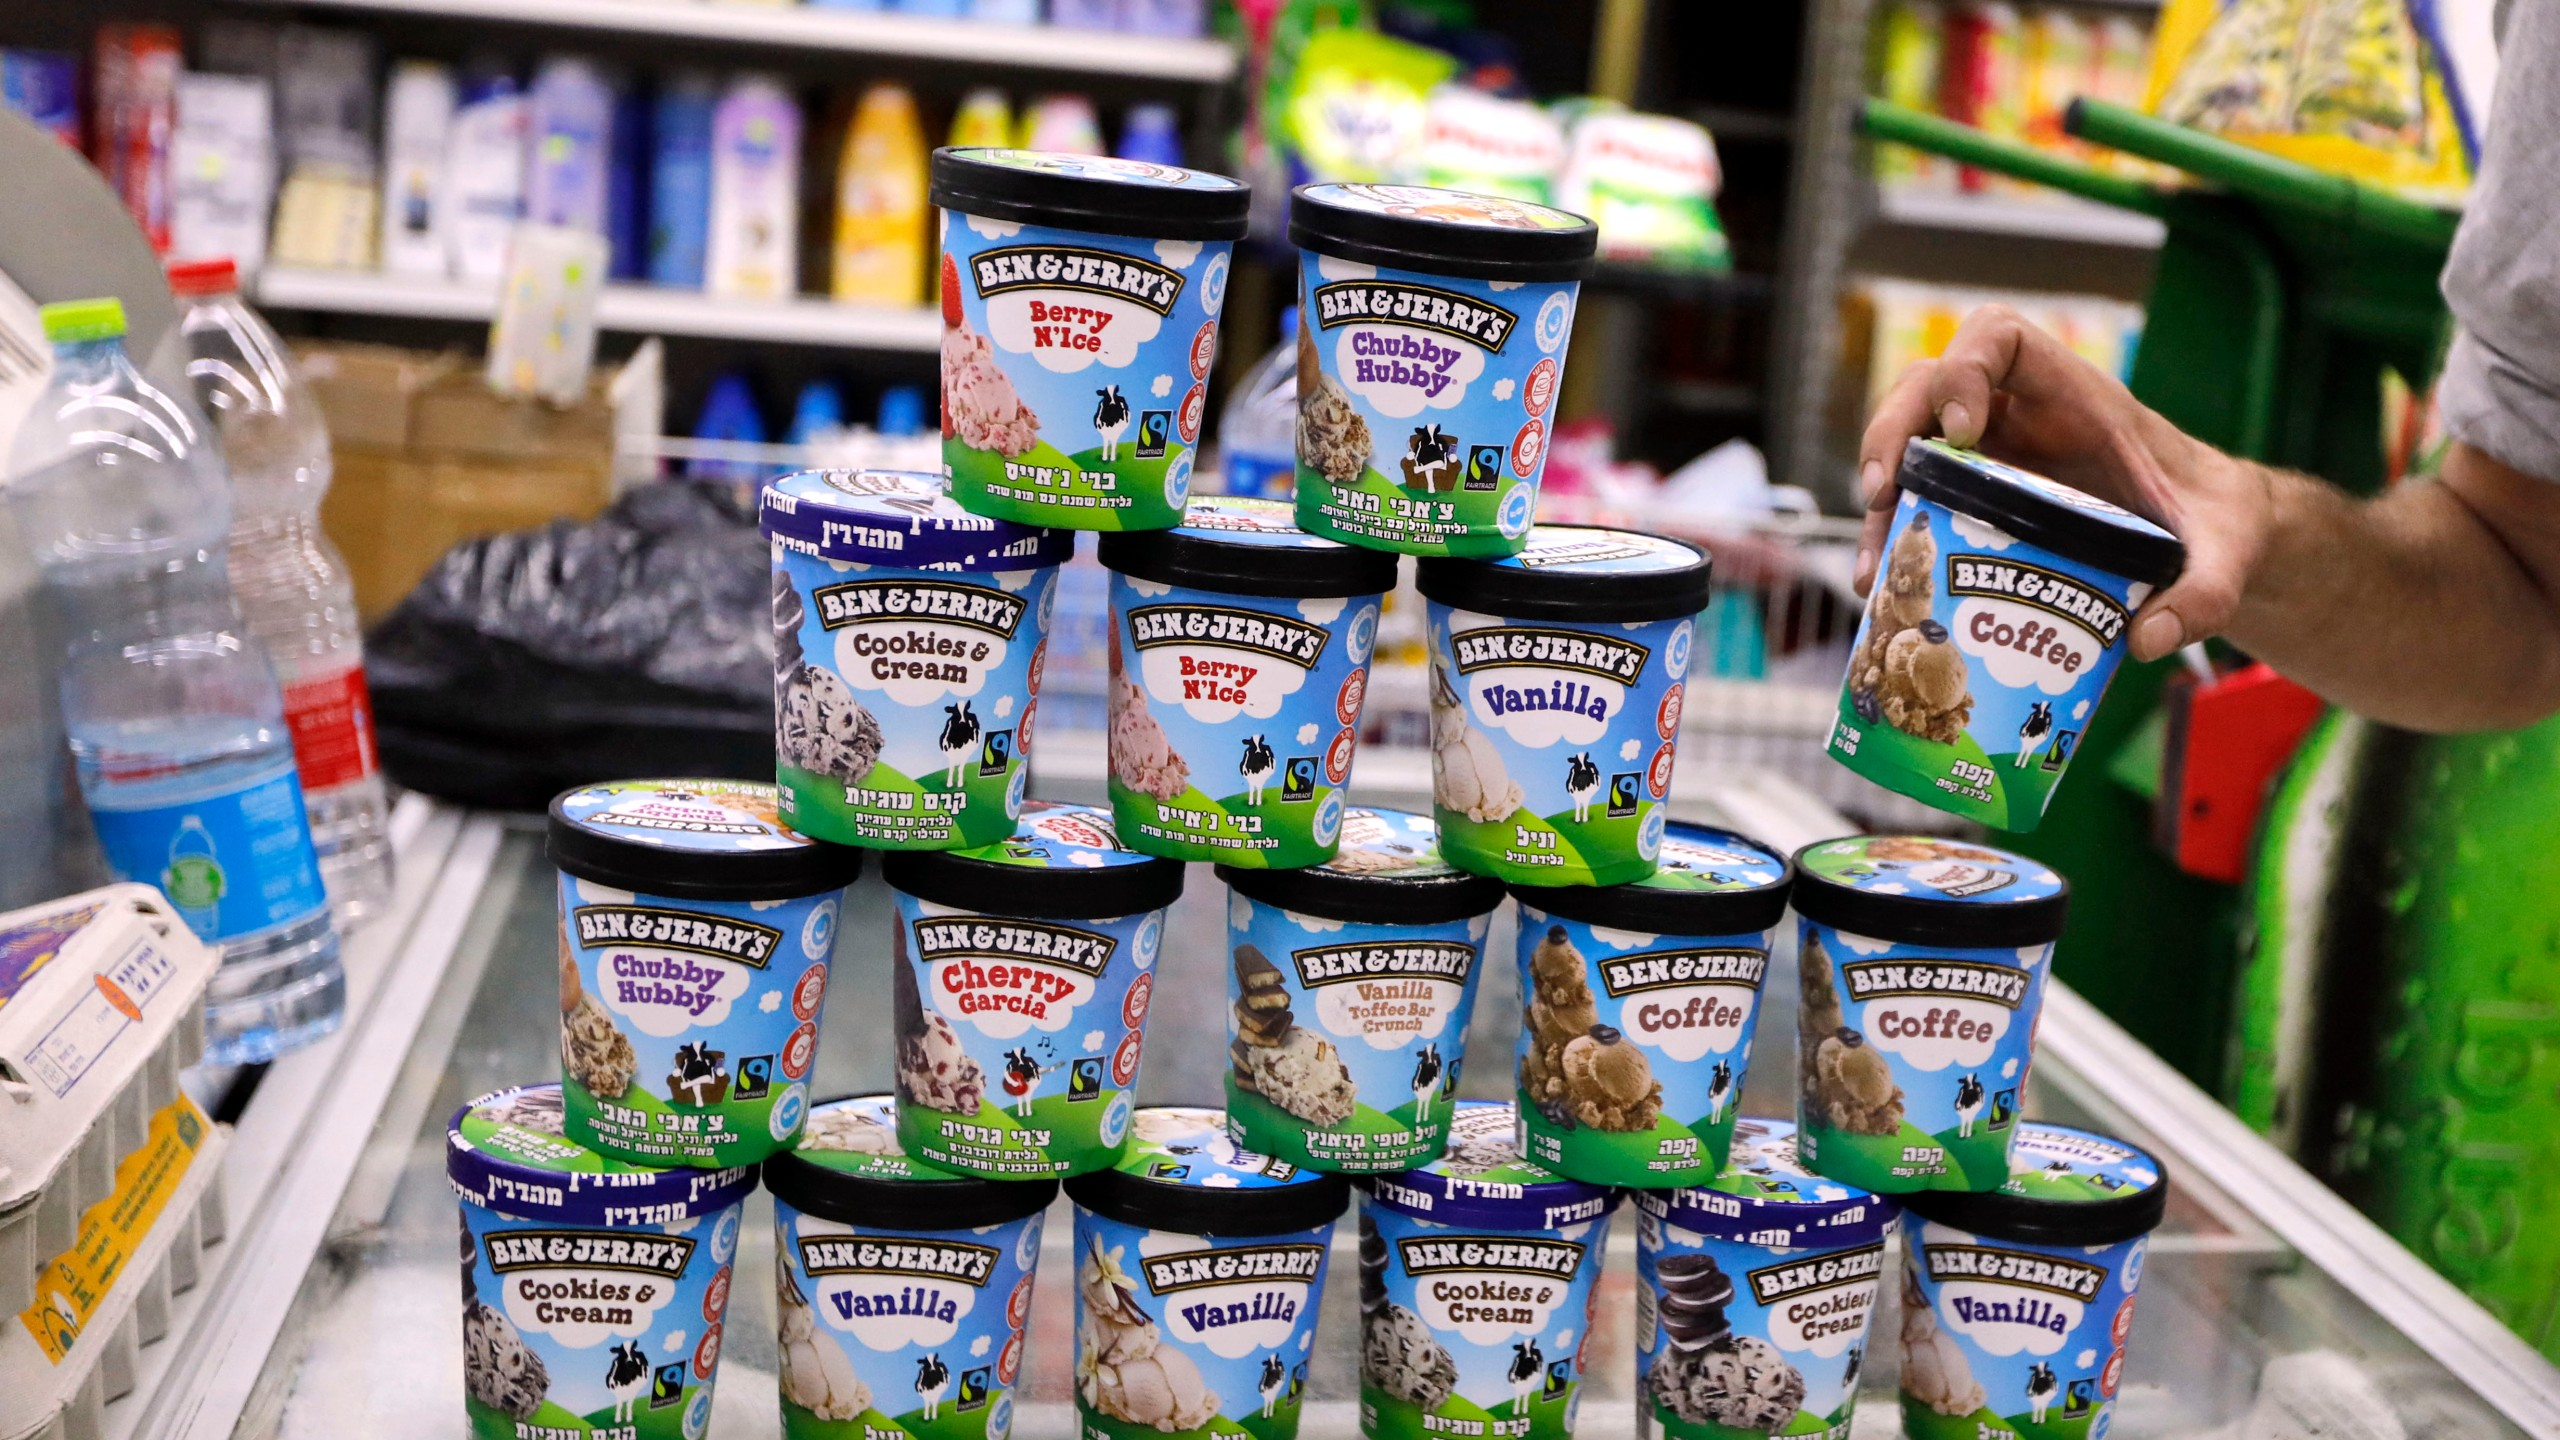 Ben & Jerry's ice cream is seen at a store in Jerusalem on July 20, 2021. (AHMAD GHARABLI/AFP via Getty Images)